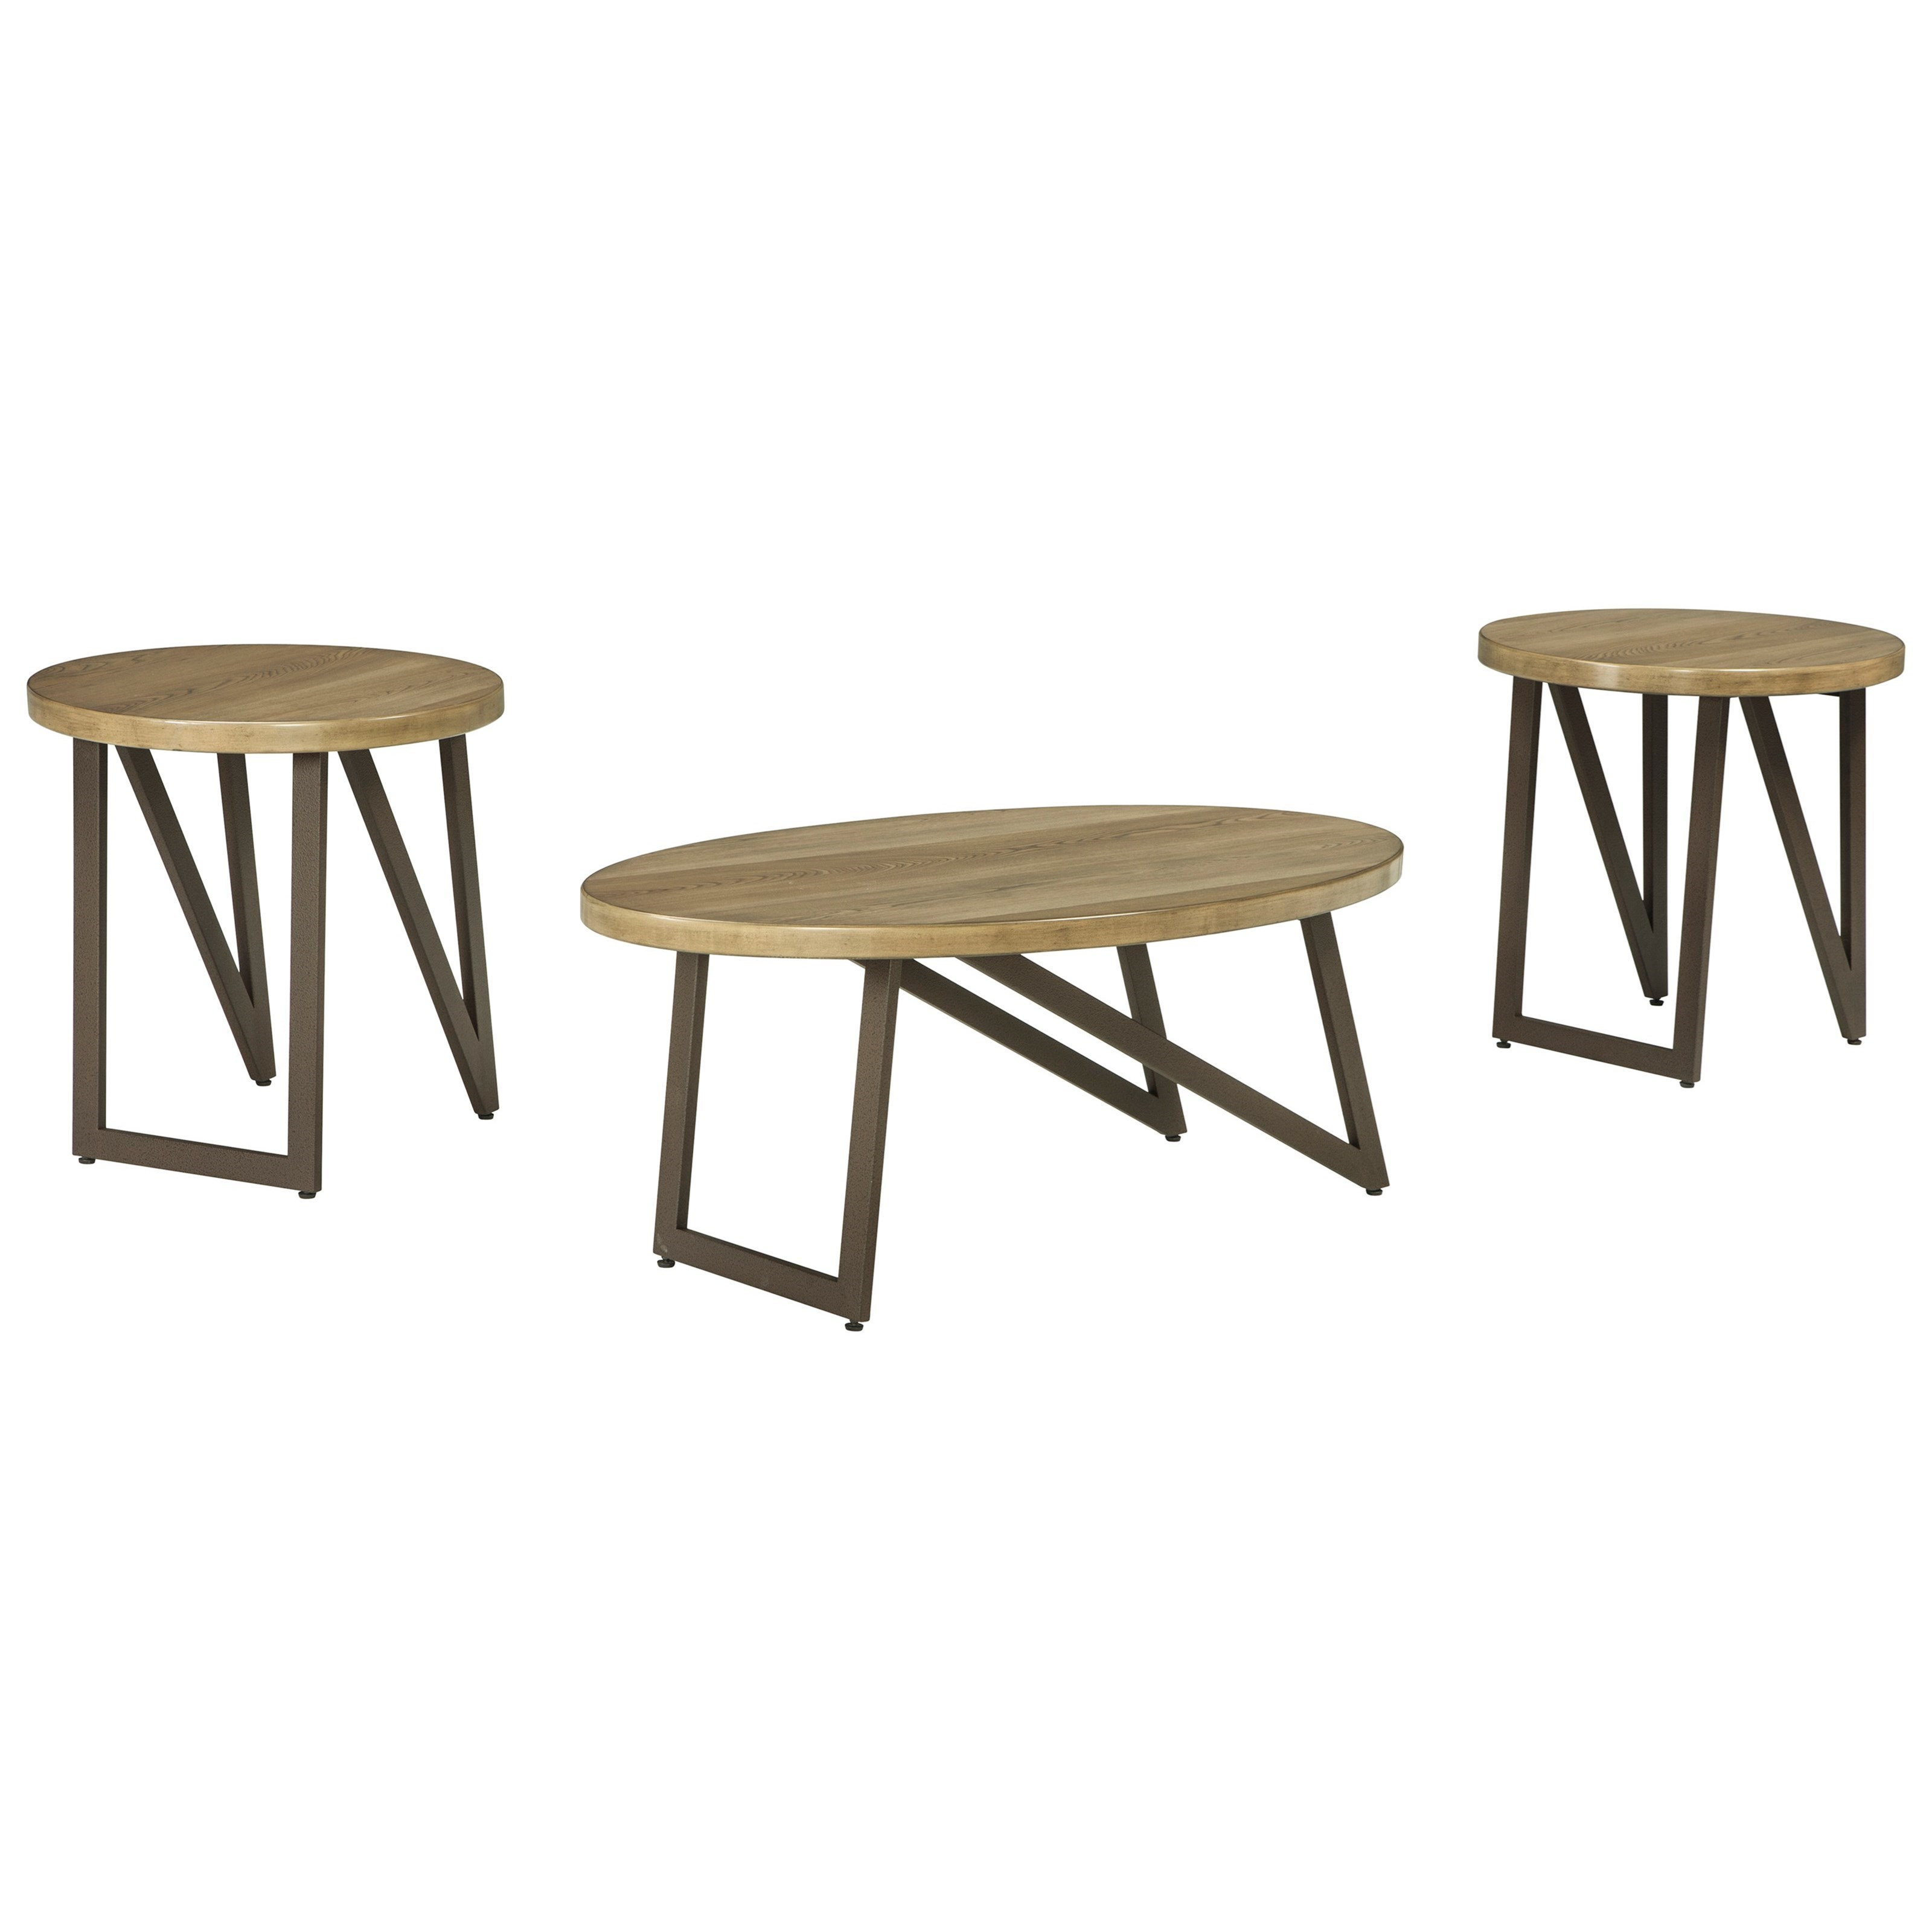 Dougetti Occasional Table Set by Signature Design at Fisher Home Furnishings